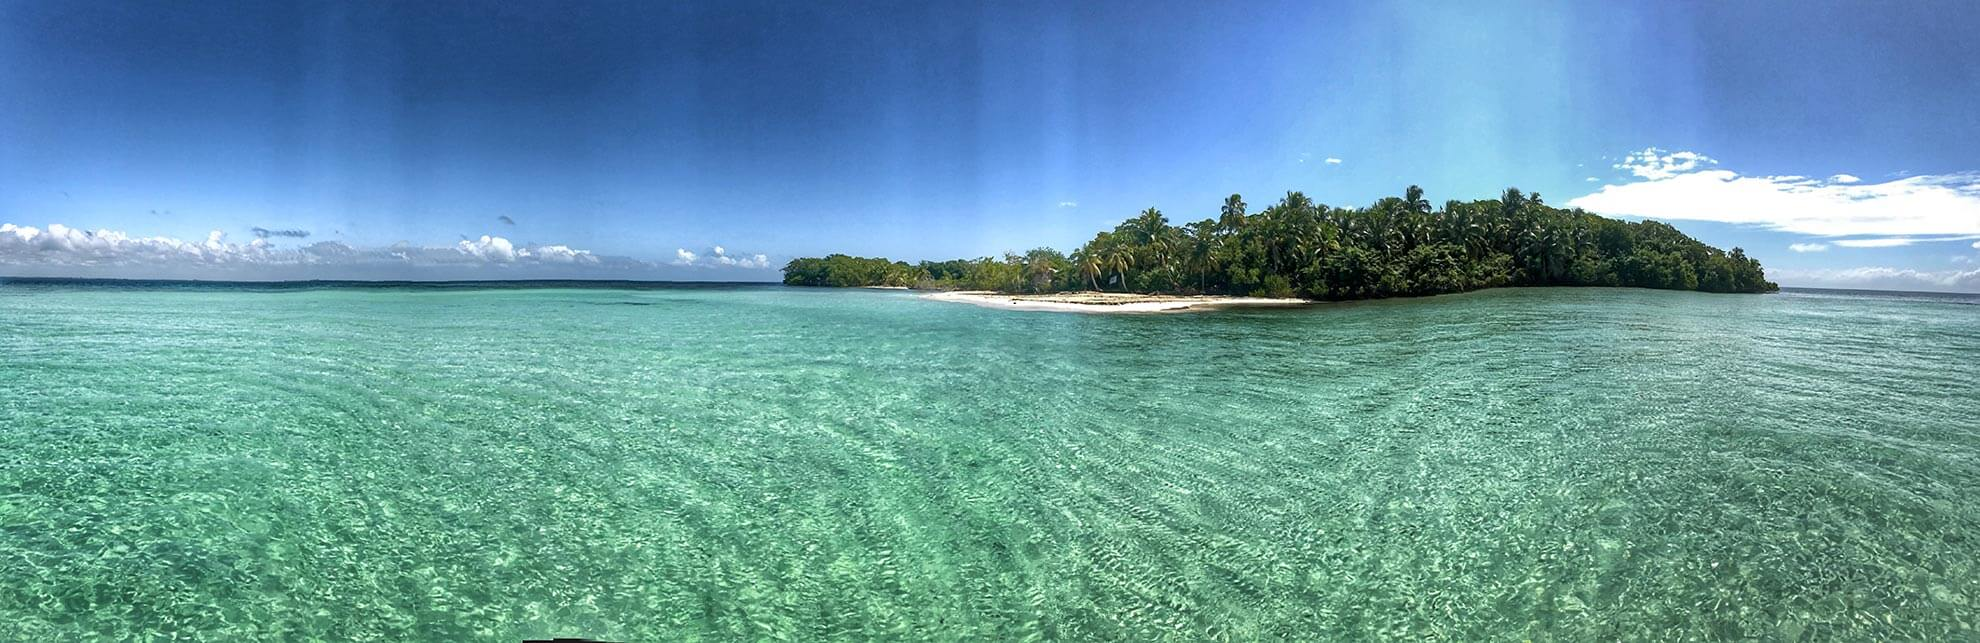 Secluded Beach in Belize